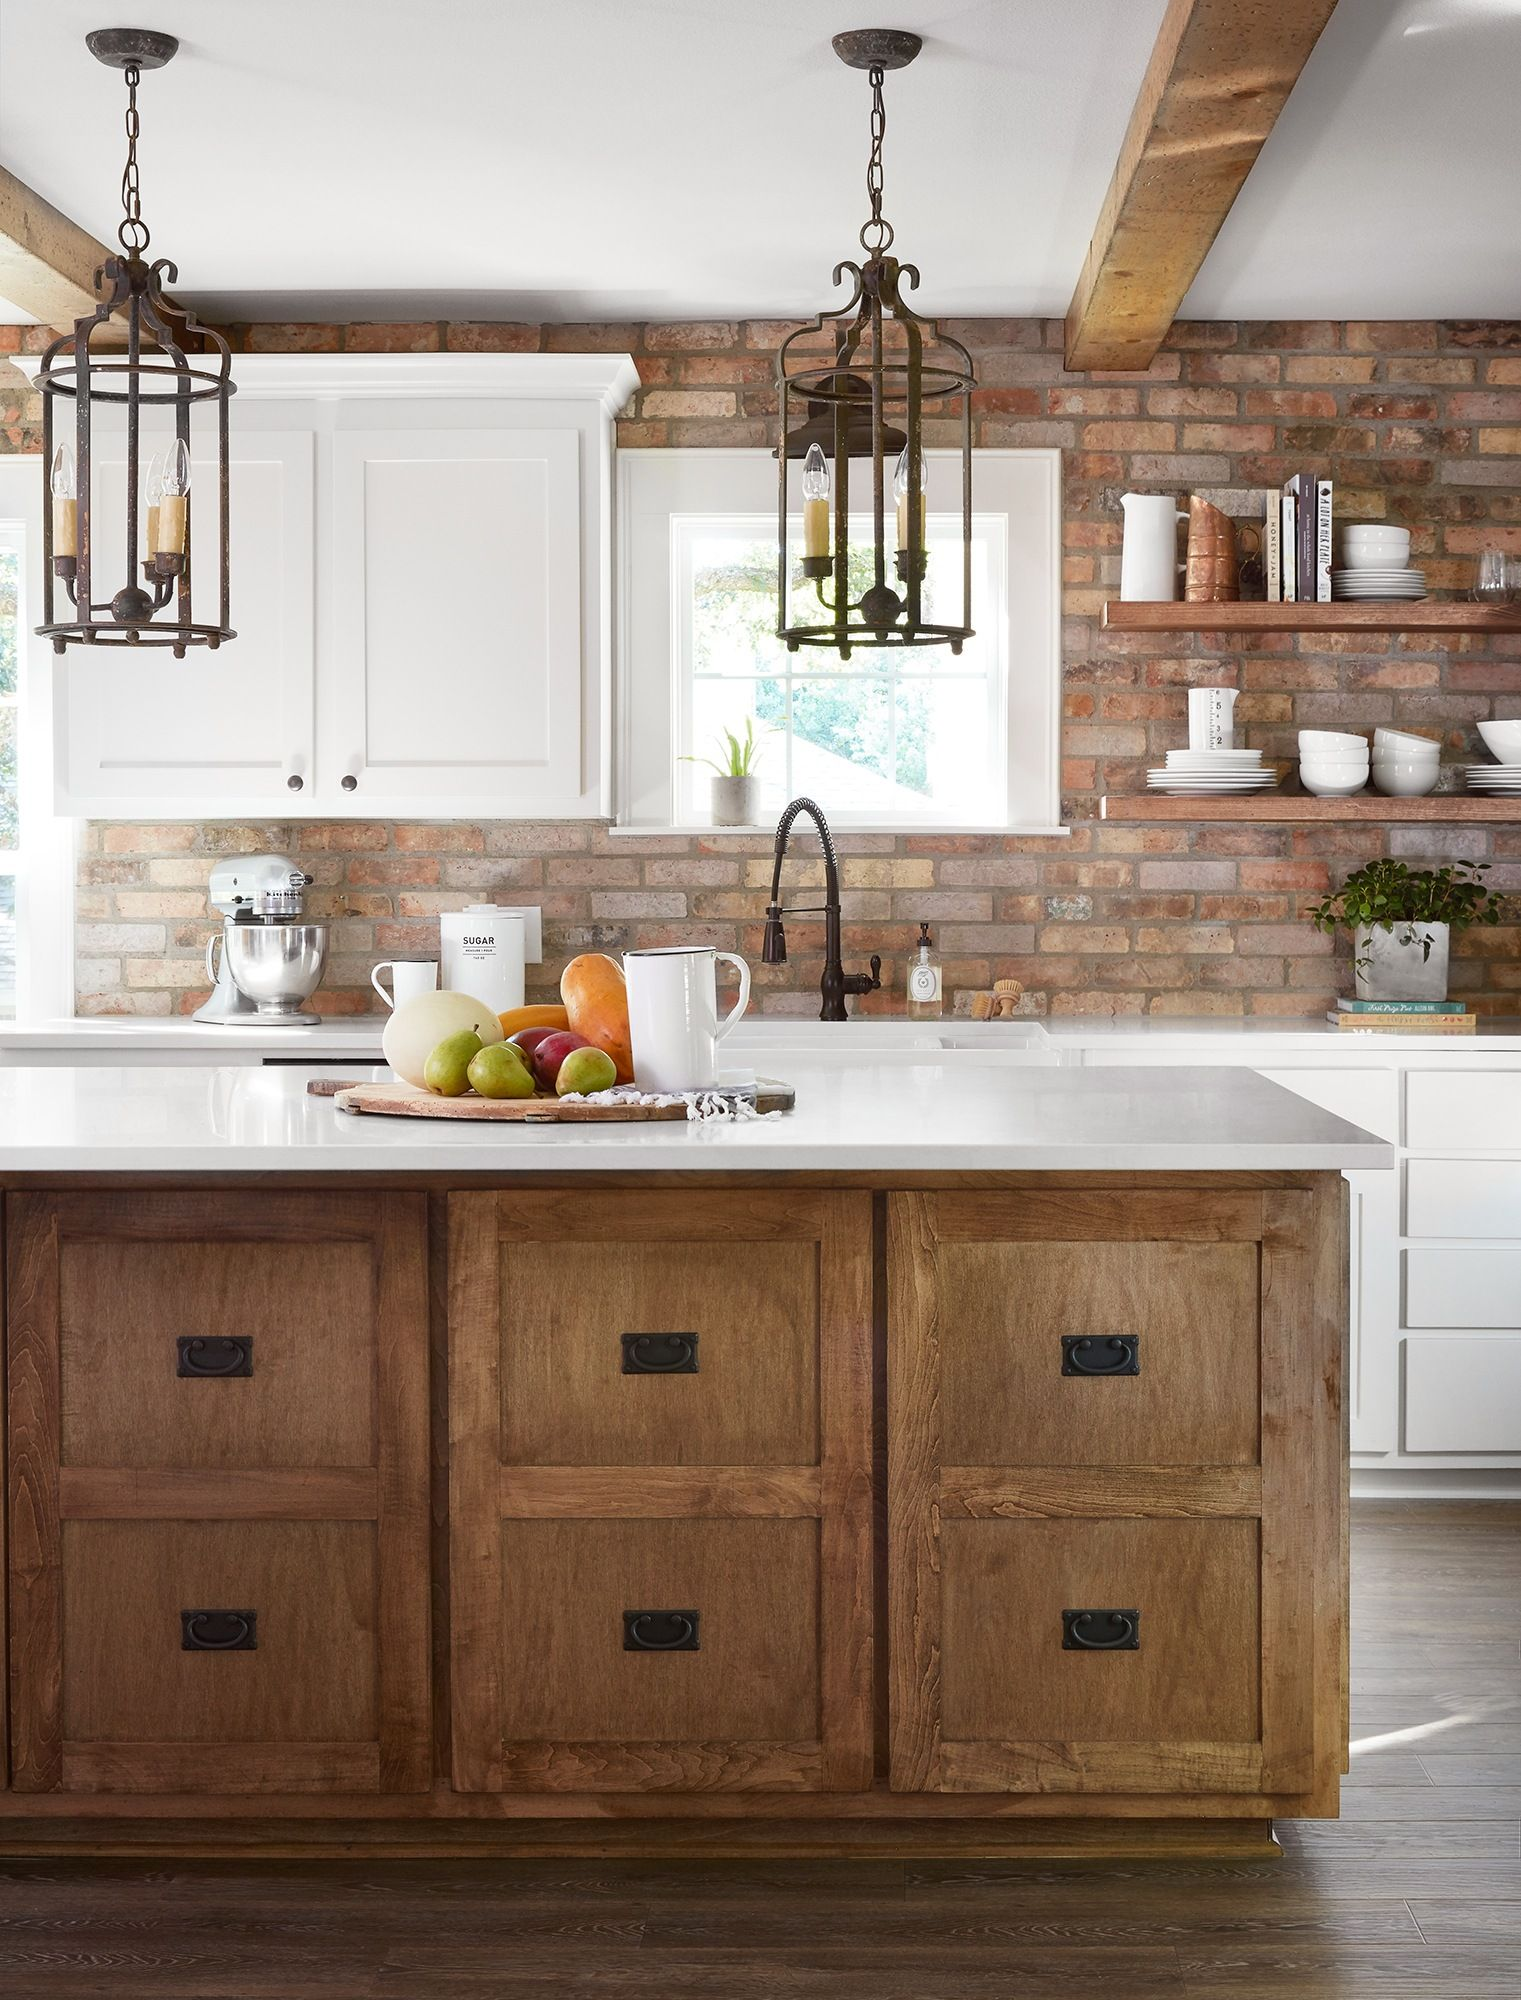 Episode 3 Season 5 (With images) Joanna gaines kitchen